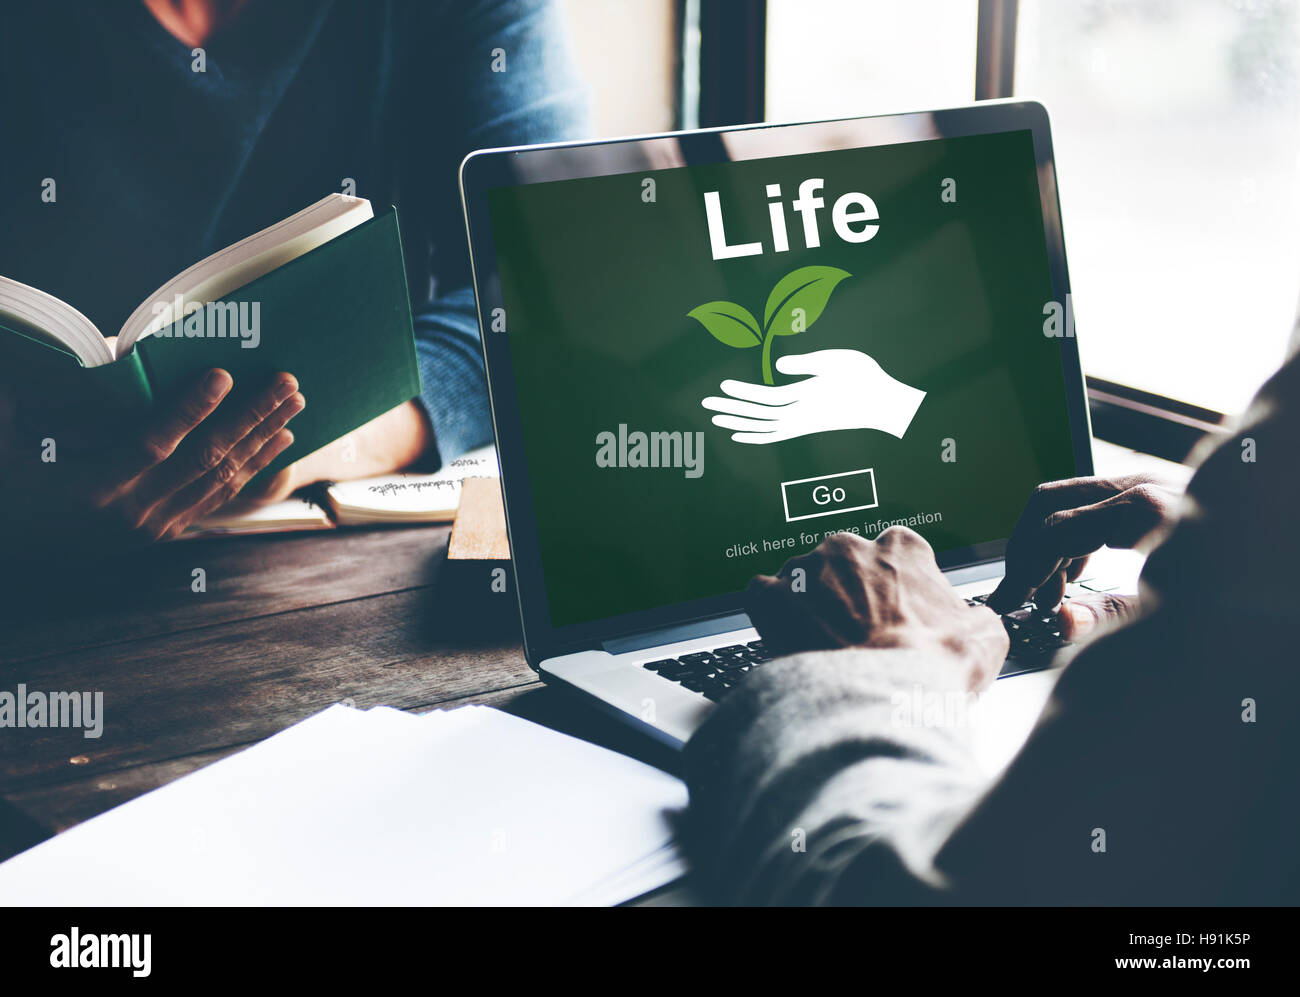 Life Ecosystem Conserve Environment Concept - Stock Image